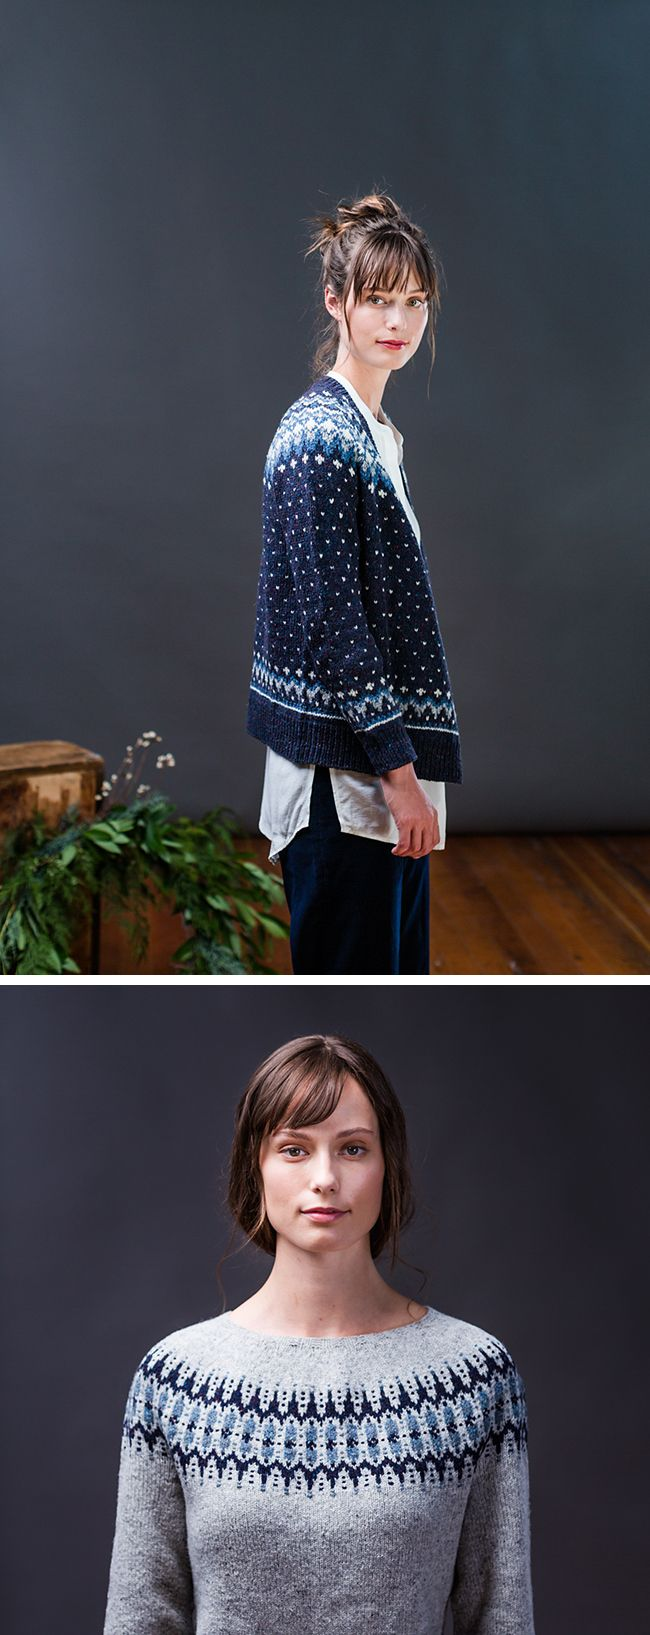 When the Brooklyn Tweed Fall '17 collection came out, I mentioned there were some sweaters that would come up here sooner or later. I was referring to Galloway by Jared Flood and Voe by Gudrun John…